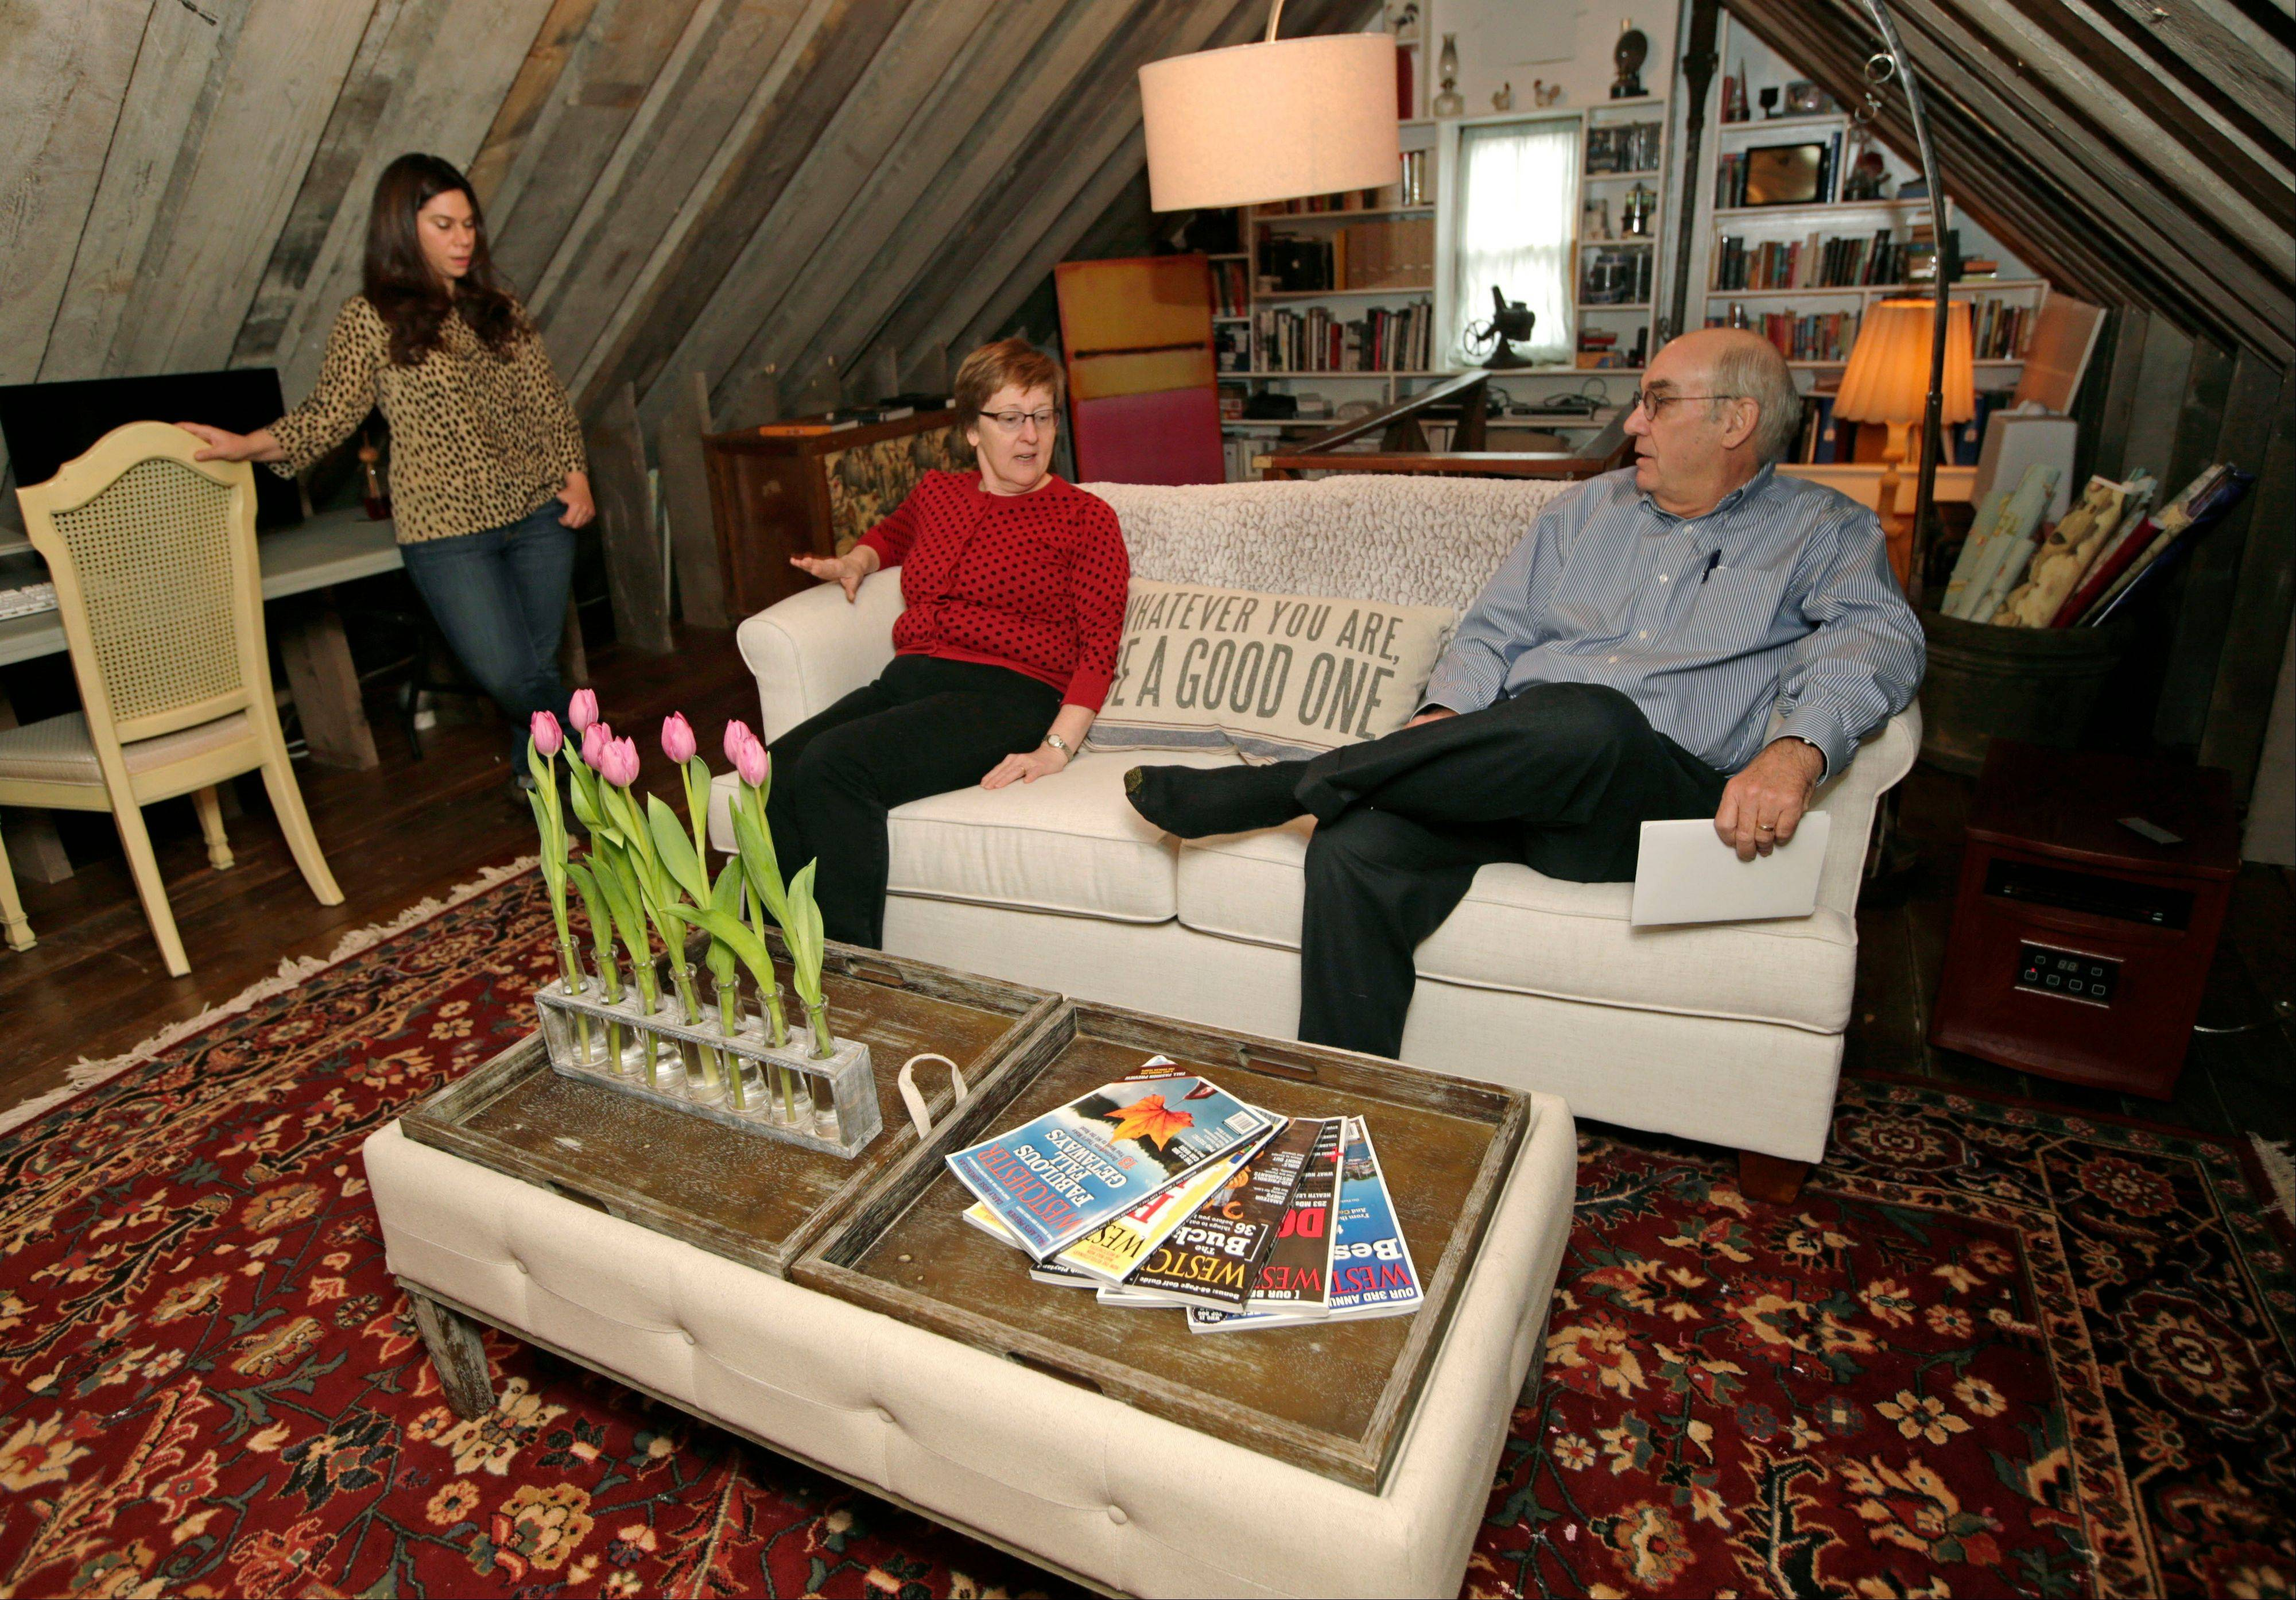 Rebecca Gwynne, left, of Tuckahoe, N.Y., answers a question as Marijane Hamren inspects Gwynne's Simplicity Sofa with her husband, Jim Hamren, in Tuckahoe, N.Y. While Simplicity's furniture is sold only over the Internet, some customers want to see and try out the sofas and chairs. Owner Jeff Frank contacts people who have already bought his furniture, and asks them if they'll let a prospective customer stop by to take a look.